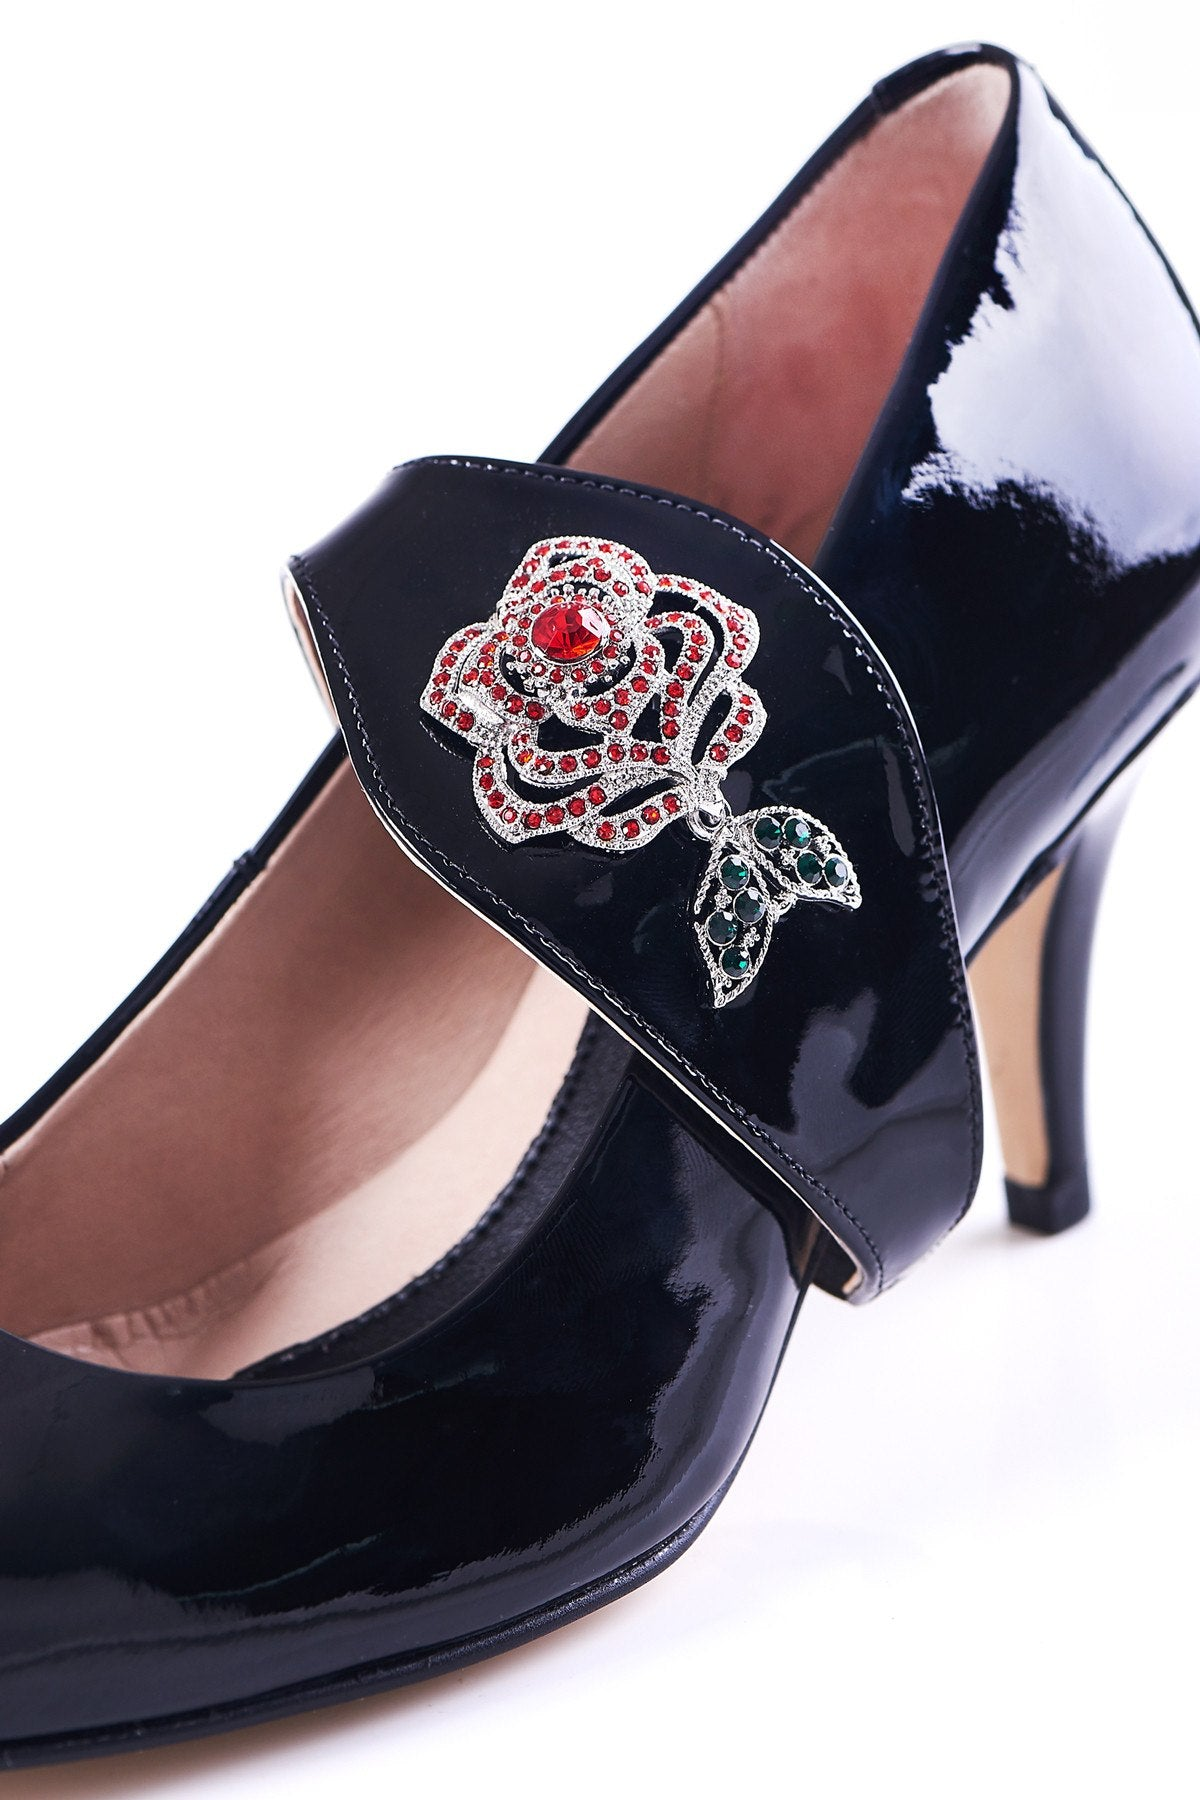 Time To Bloom - 18 Hour Heels - Black Leather - Shoes by Shaherazad